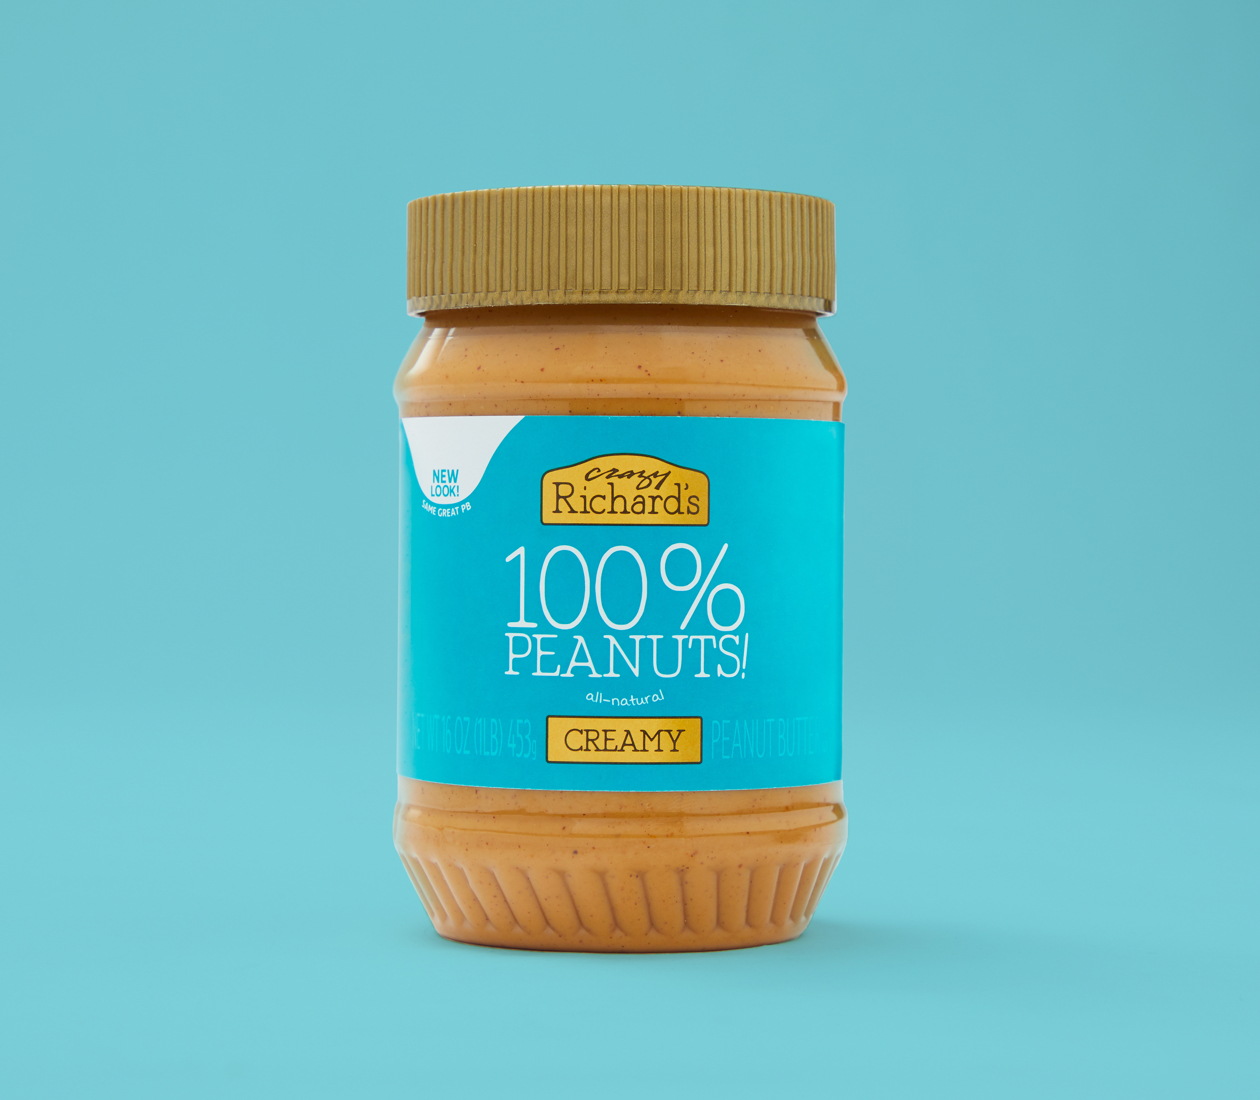 Crazy Richard's Creamy Peanut Butter on teal background